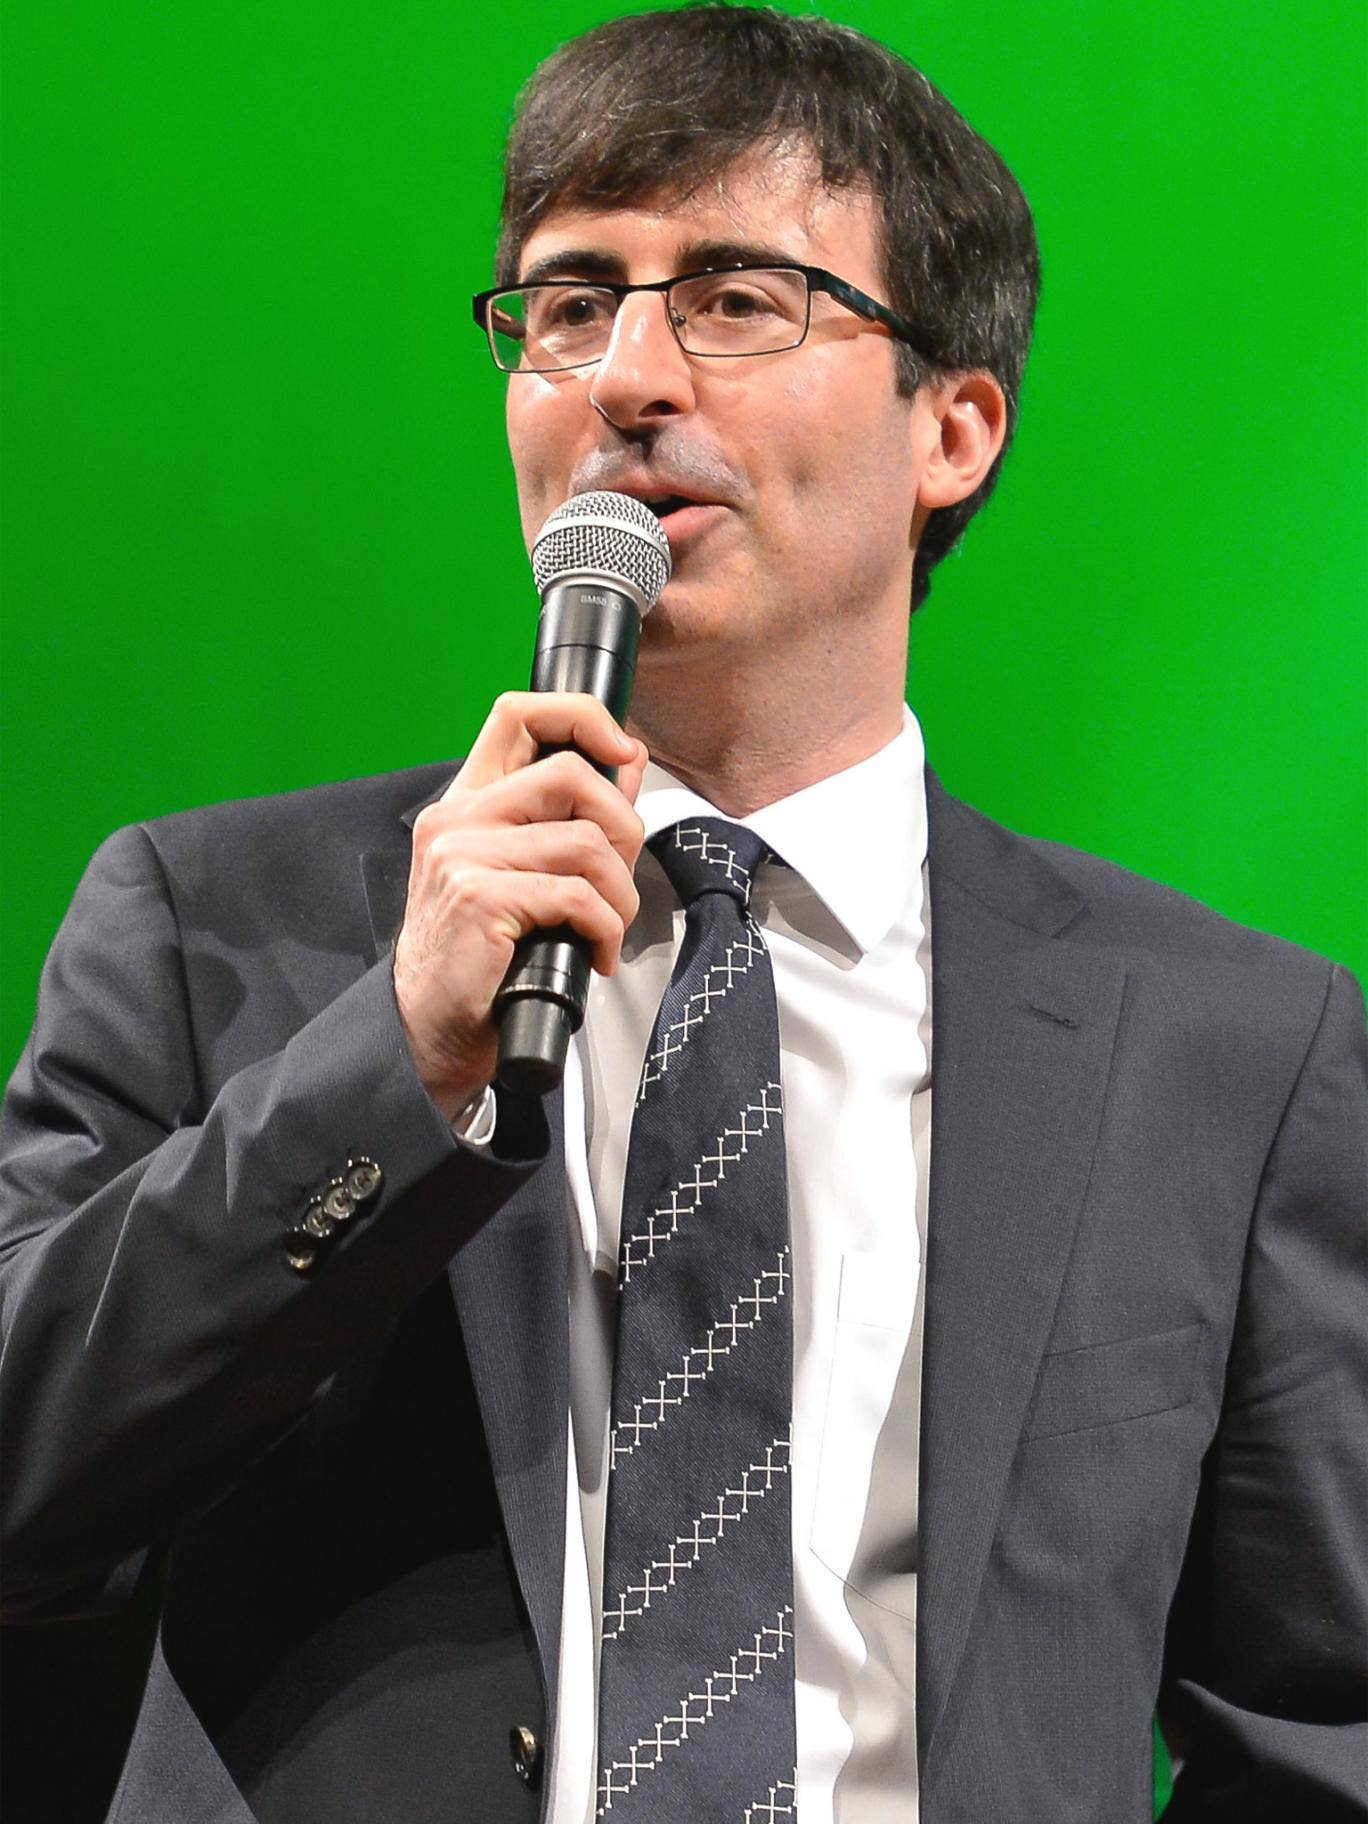 'The Daily Show' spoof reporter, John Oliver